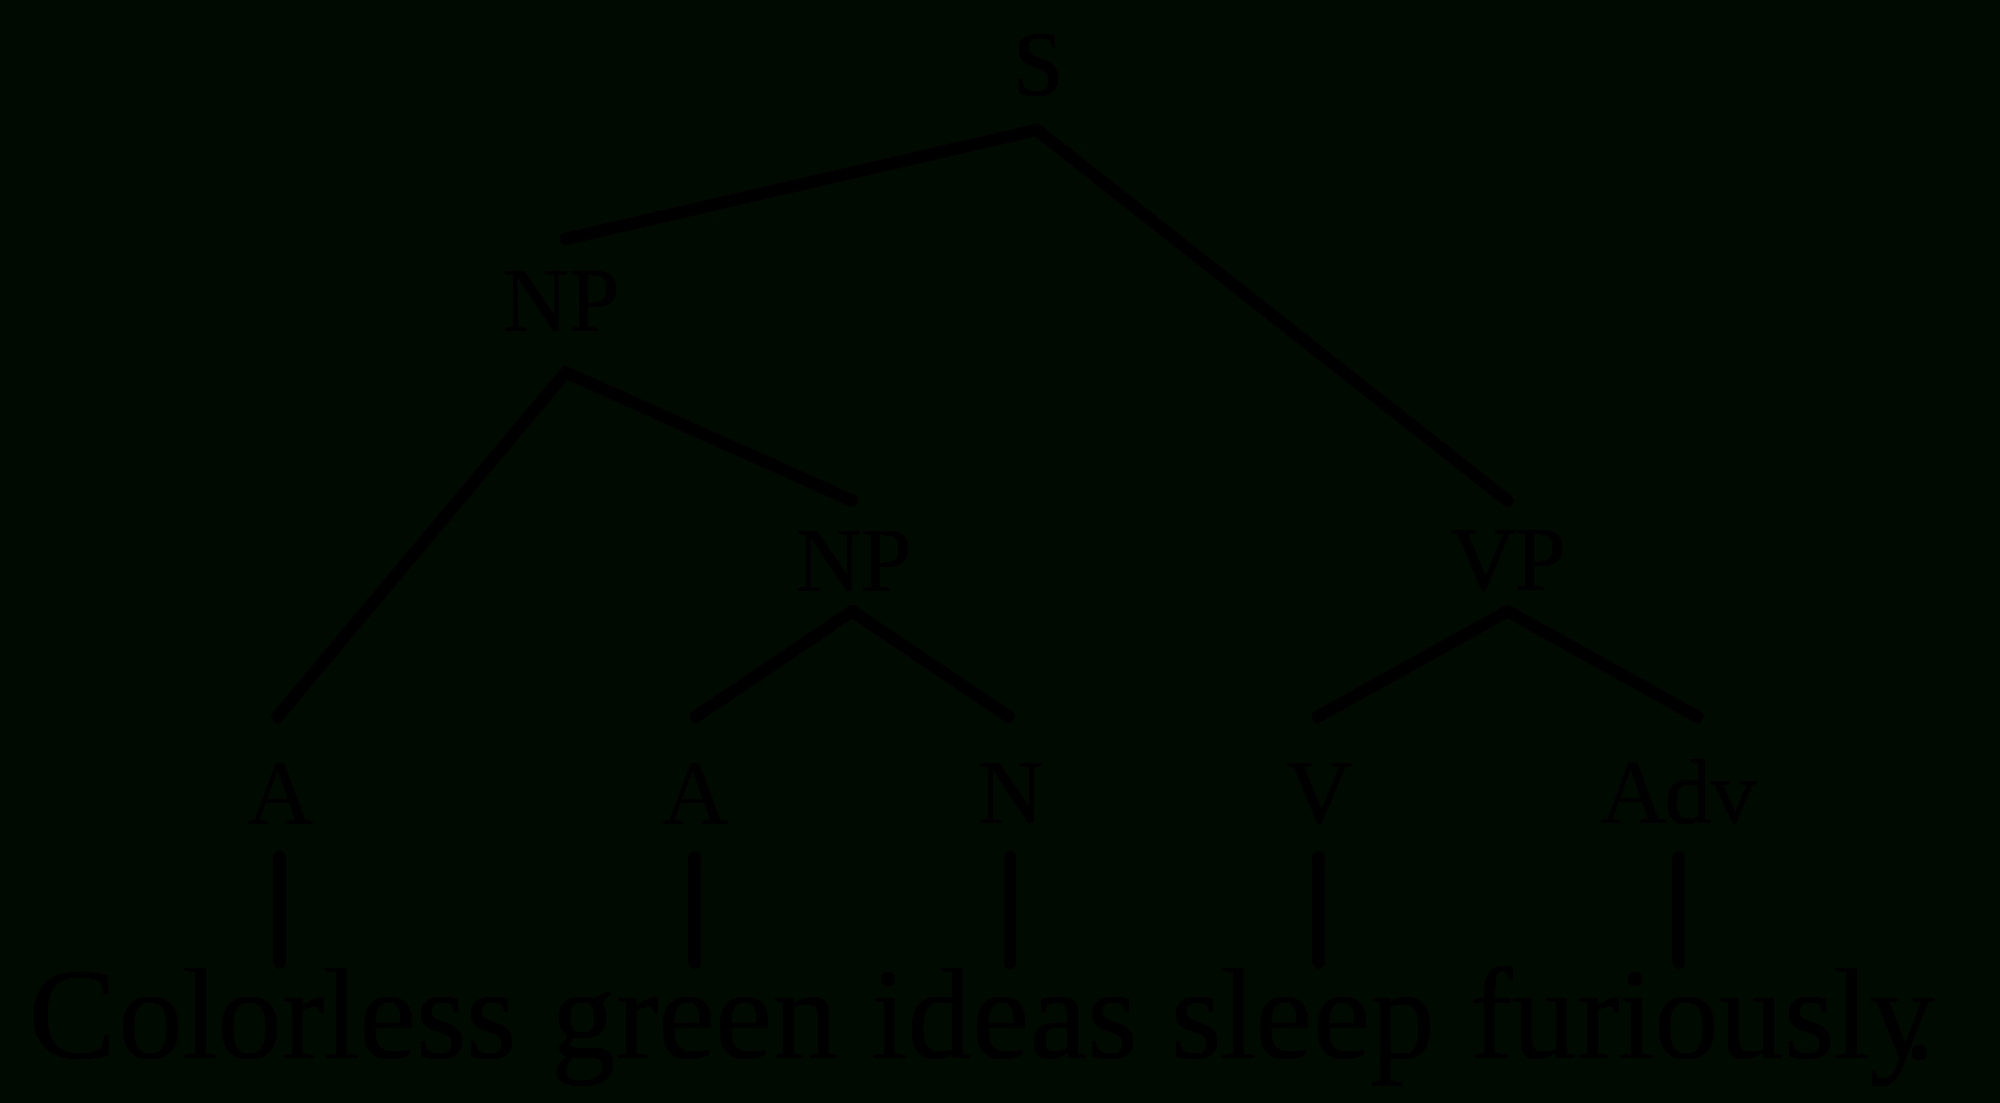 10 Gorgeous Colorless Green Ideas Sleep Furiously filecgisf tgg svg wikimedia commons 2020